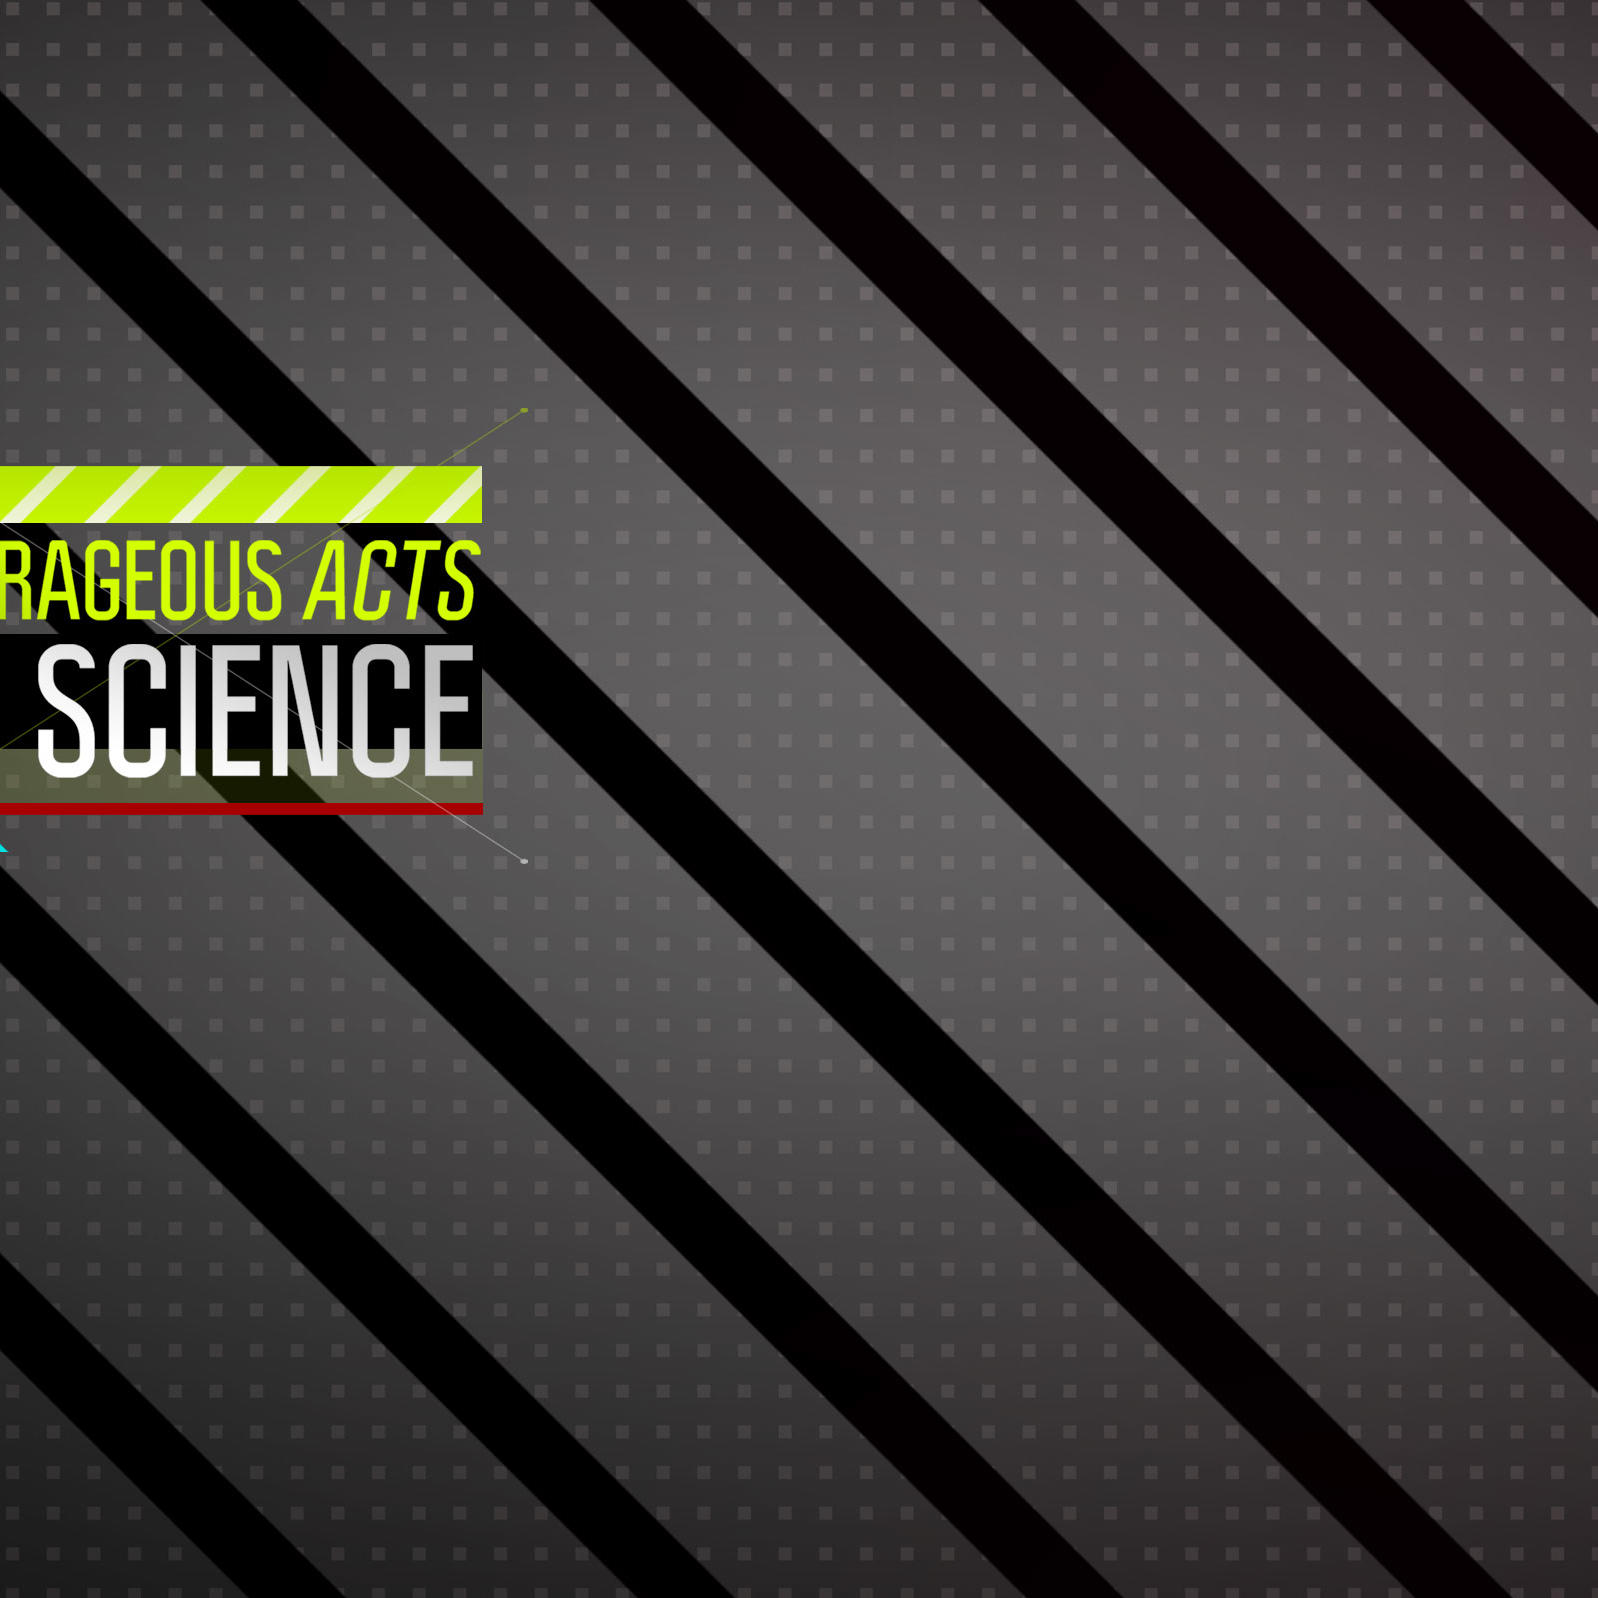 Outrageous Acts of Science Premiere